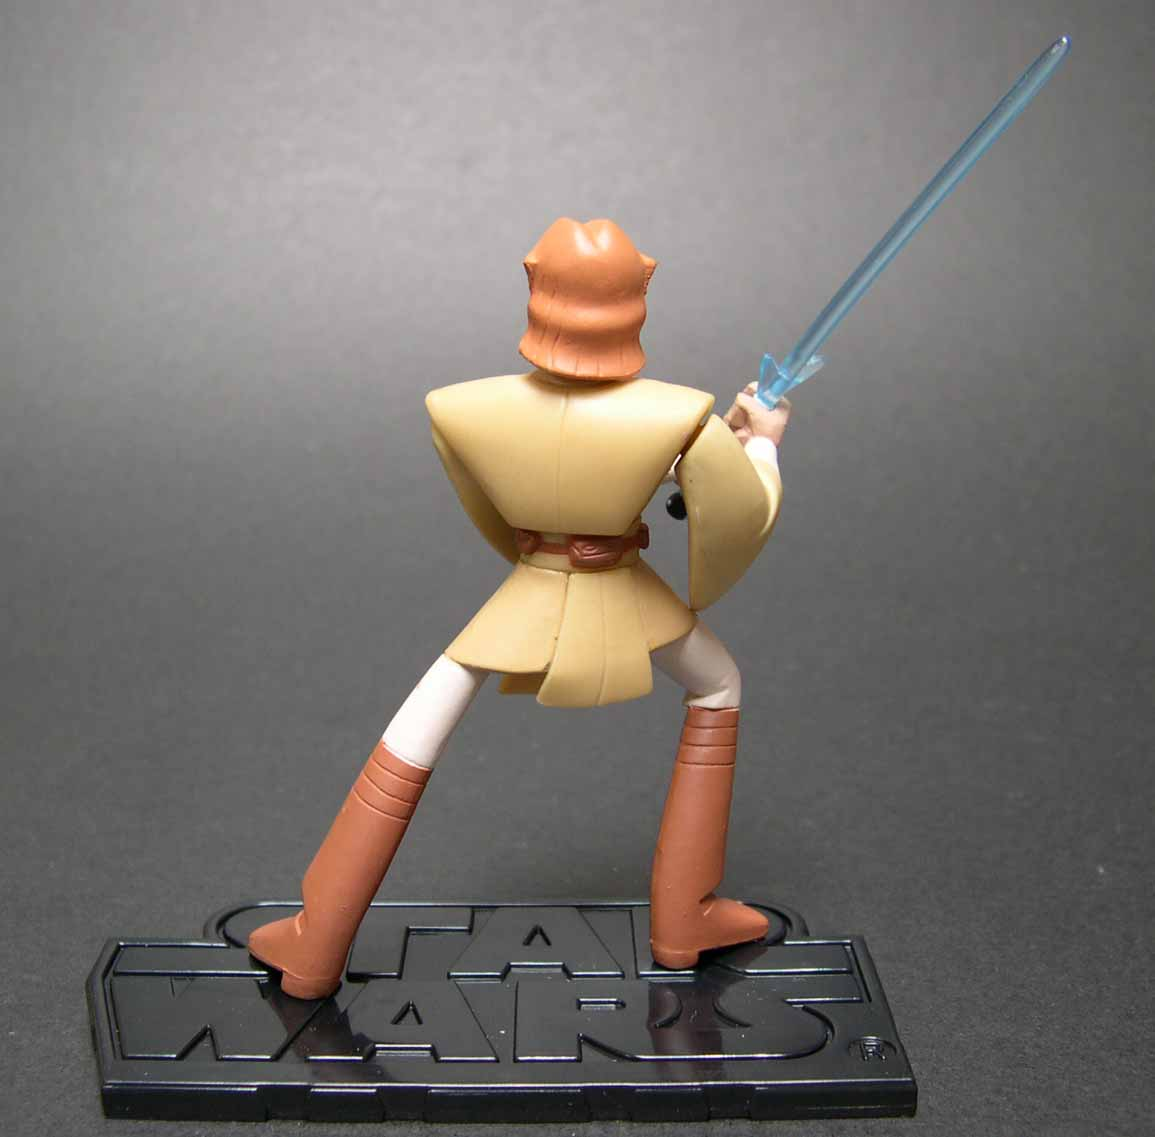 Clone Wars Animated Series Obi-Wan Kenobi